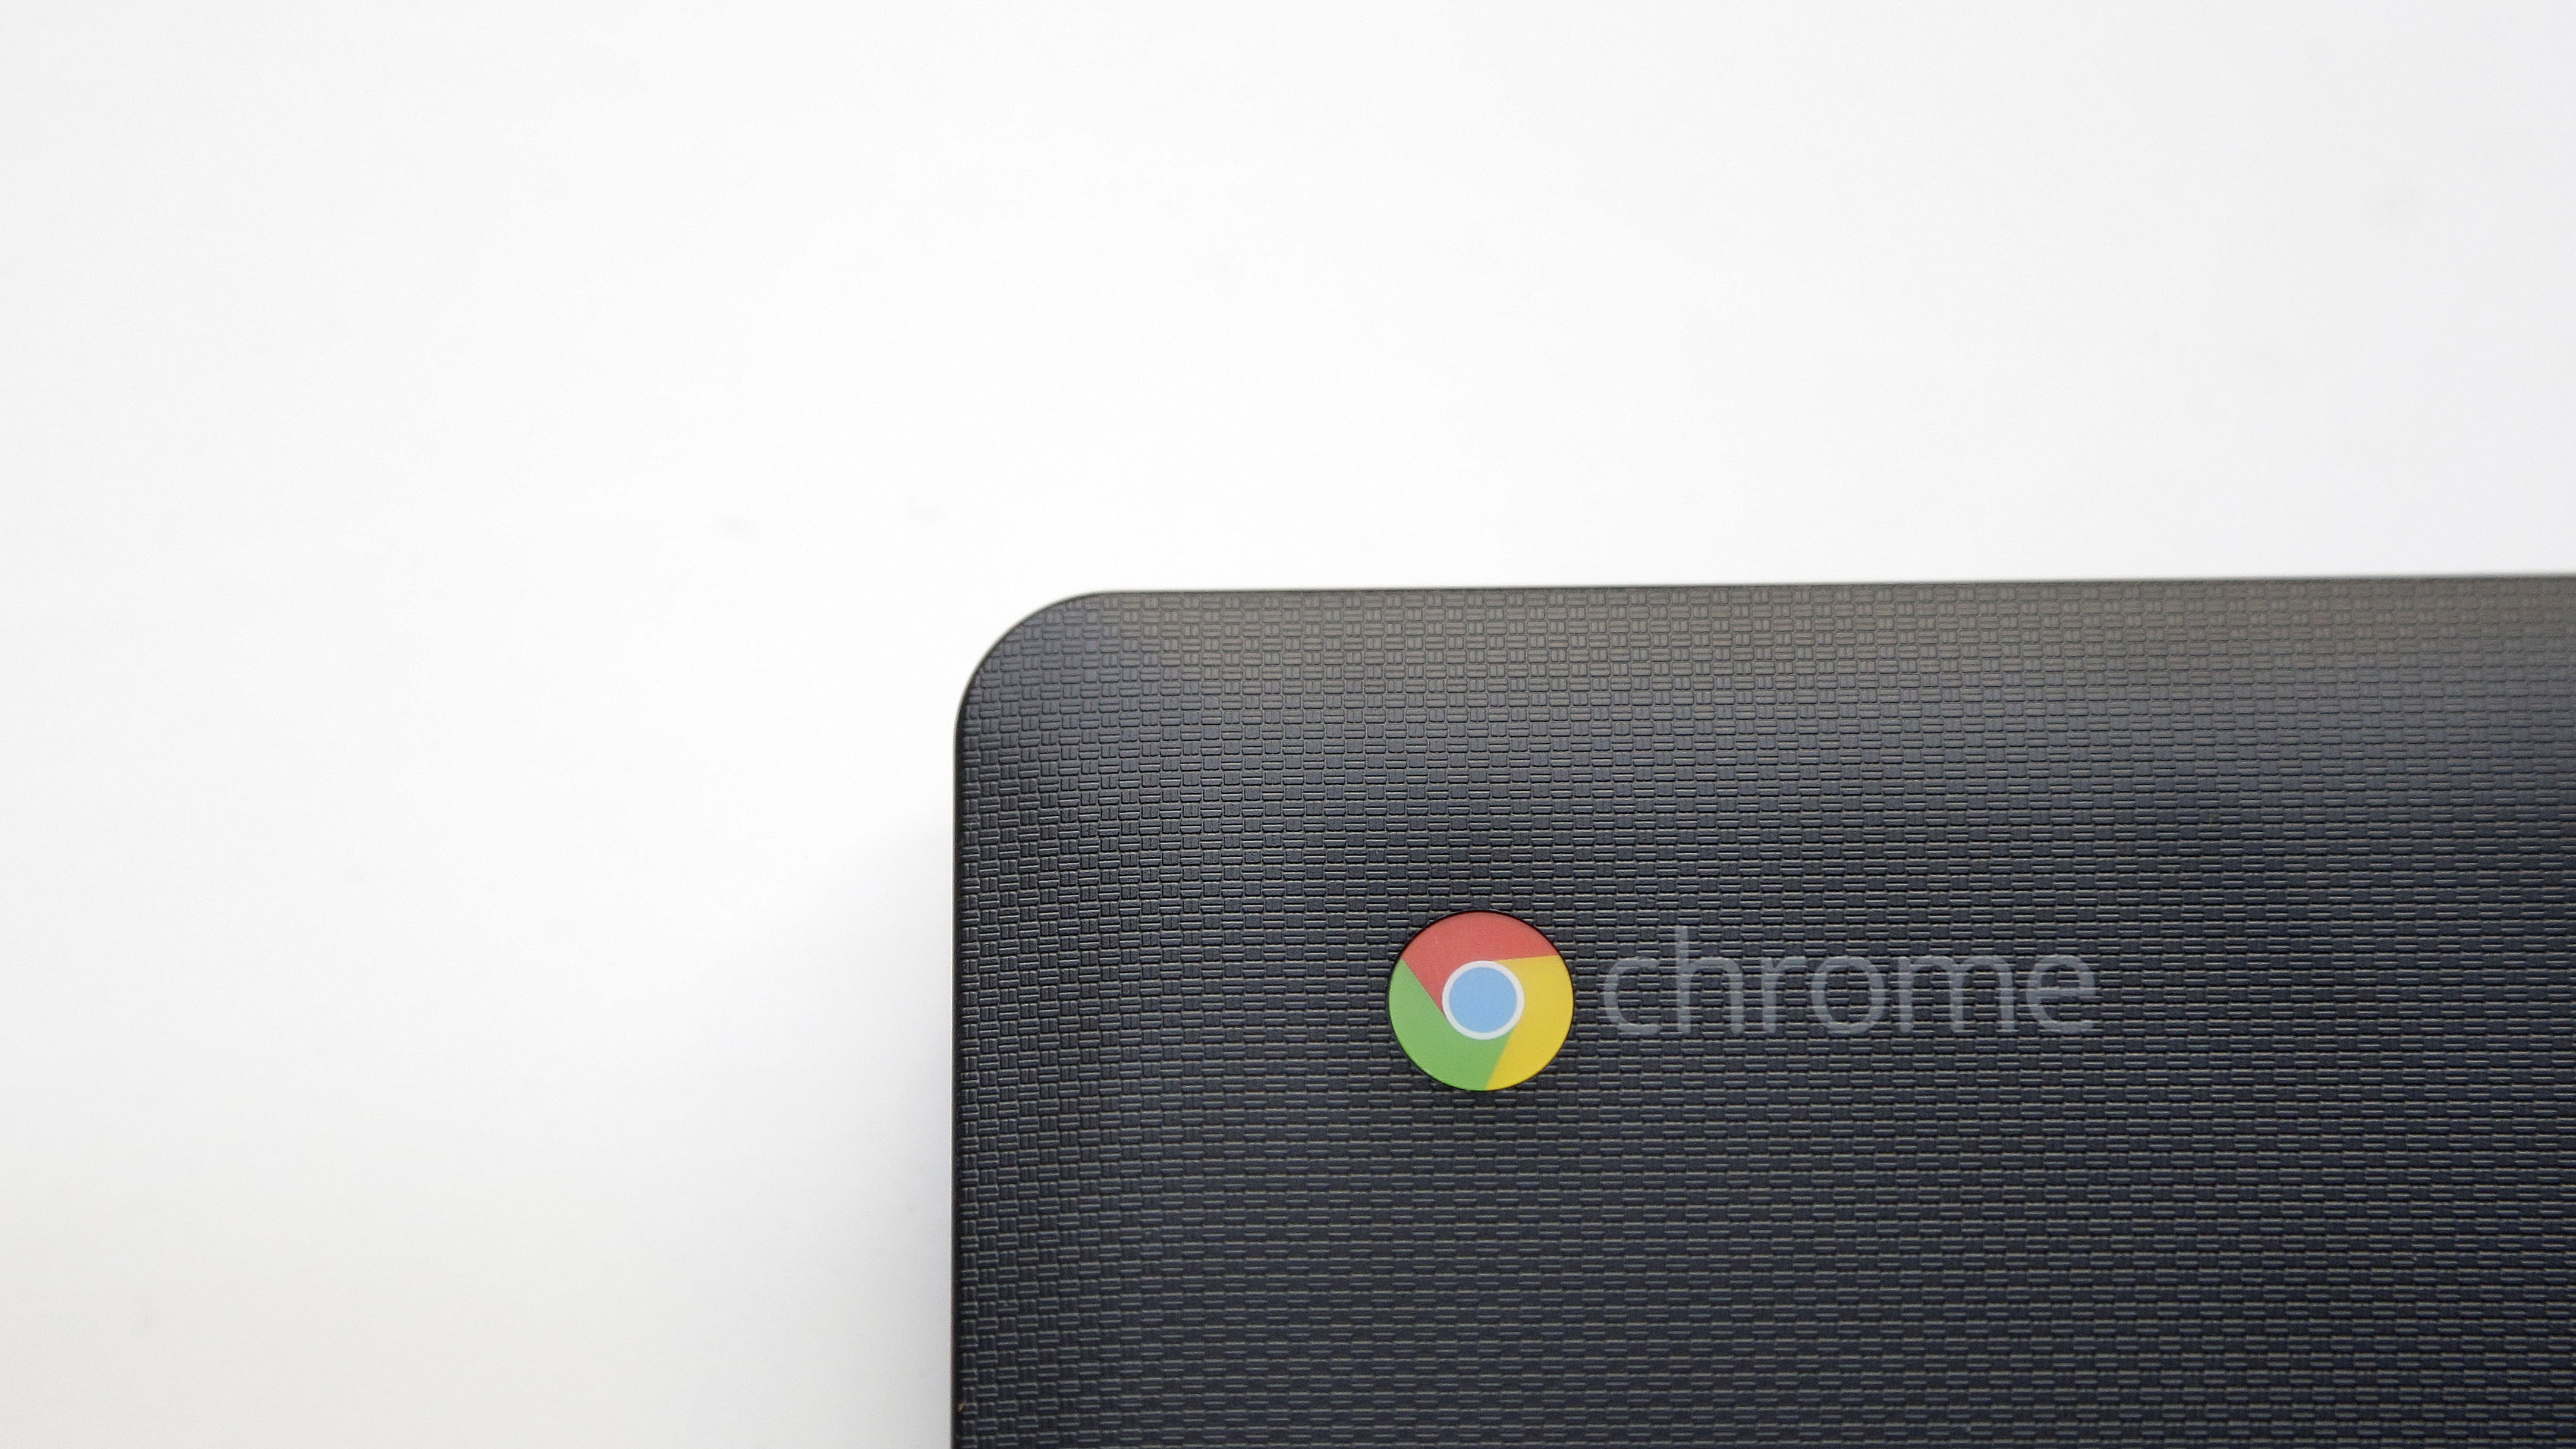 Google unveils new Chrome OS tablets right before Apple shows off